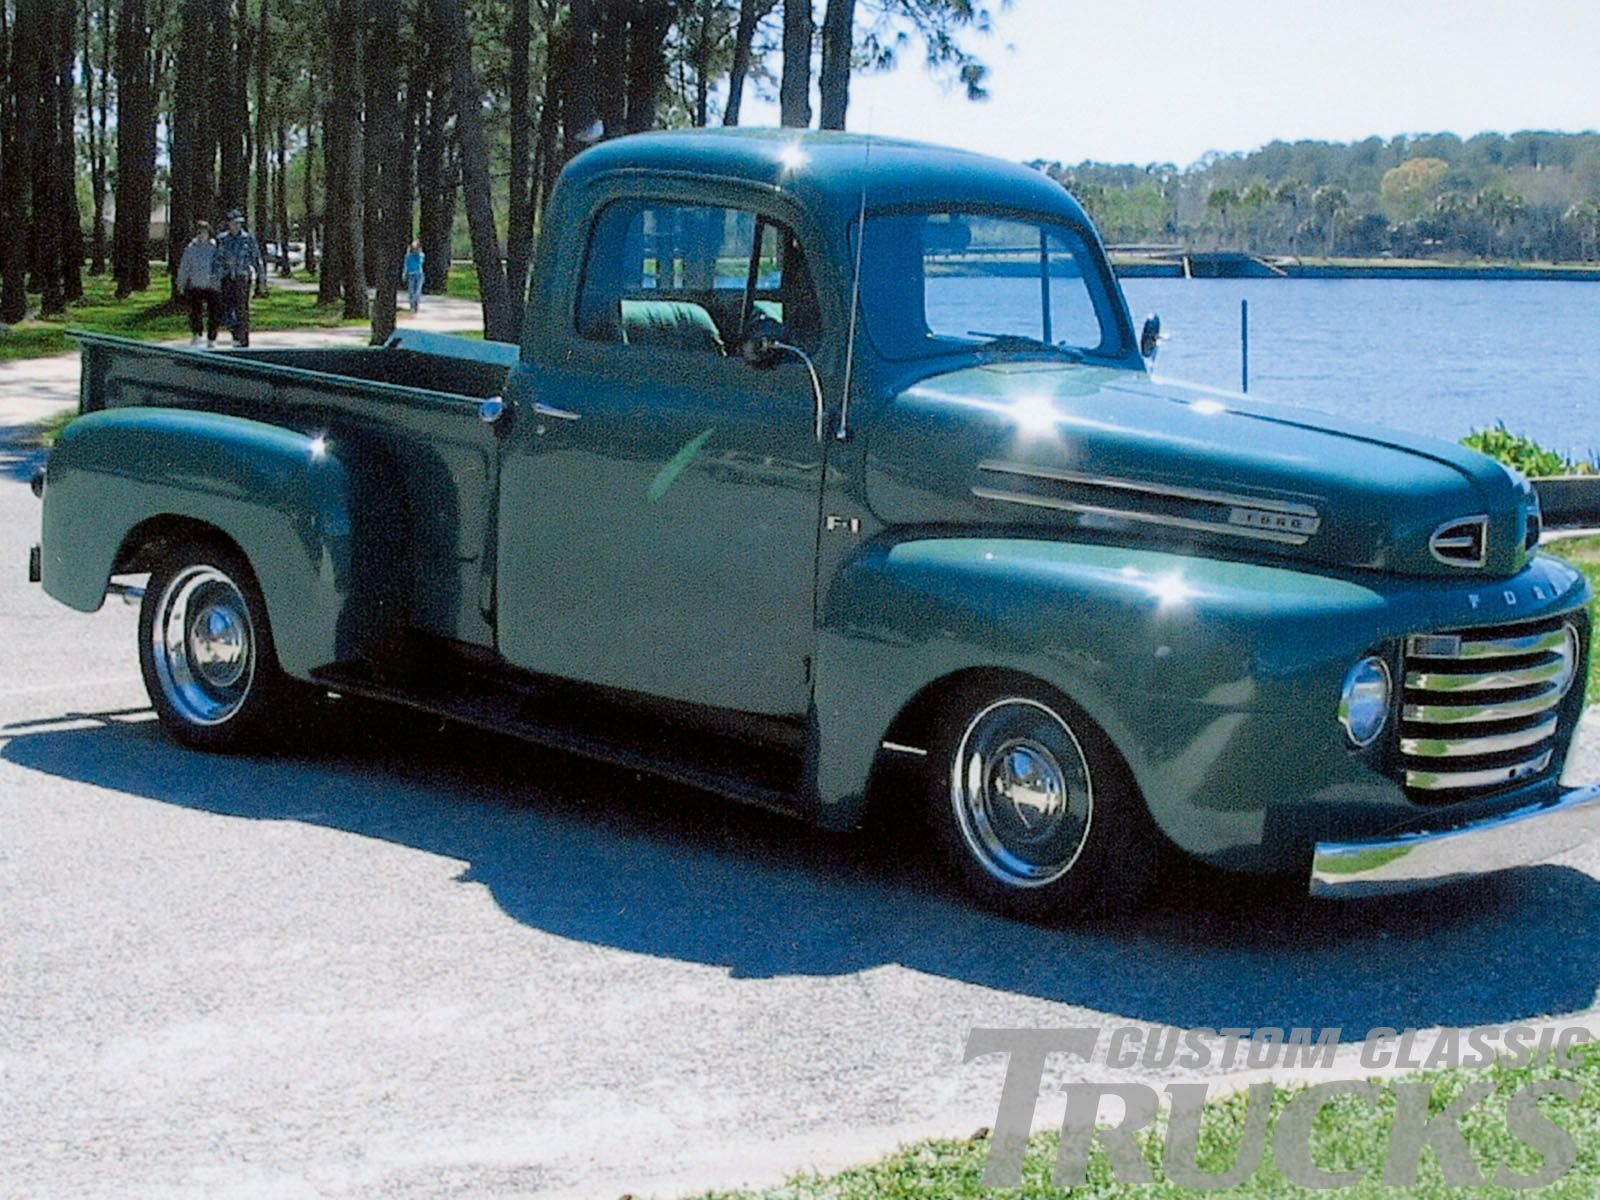 1948 Ford truck Maintenance/restoration of old/vintage vehicles: the ...